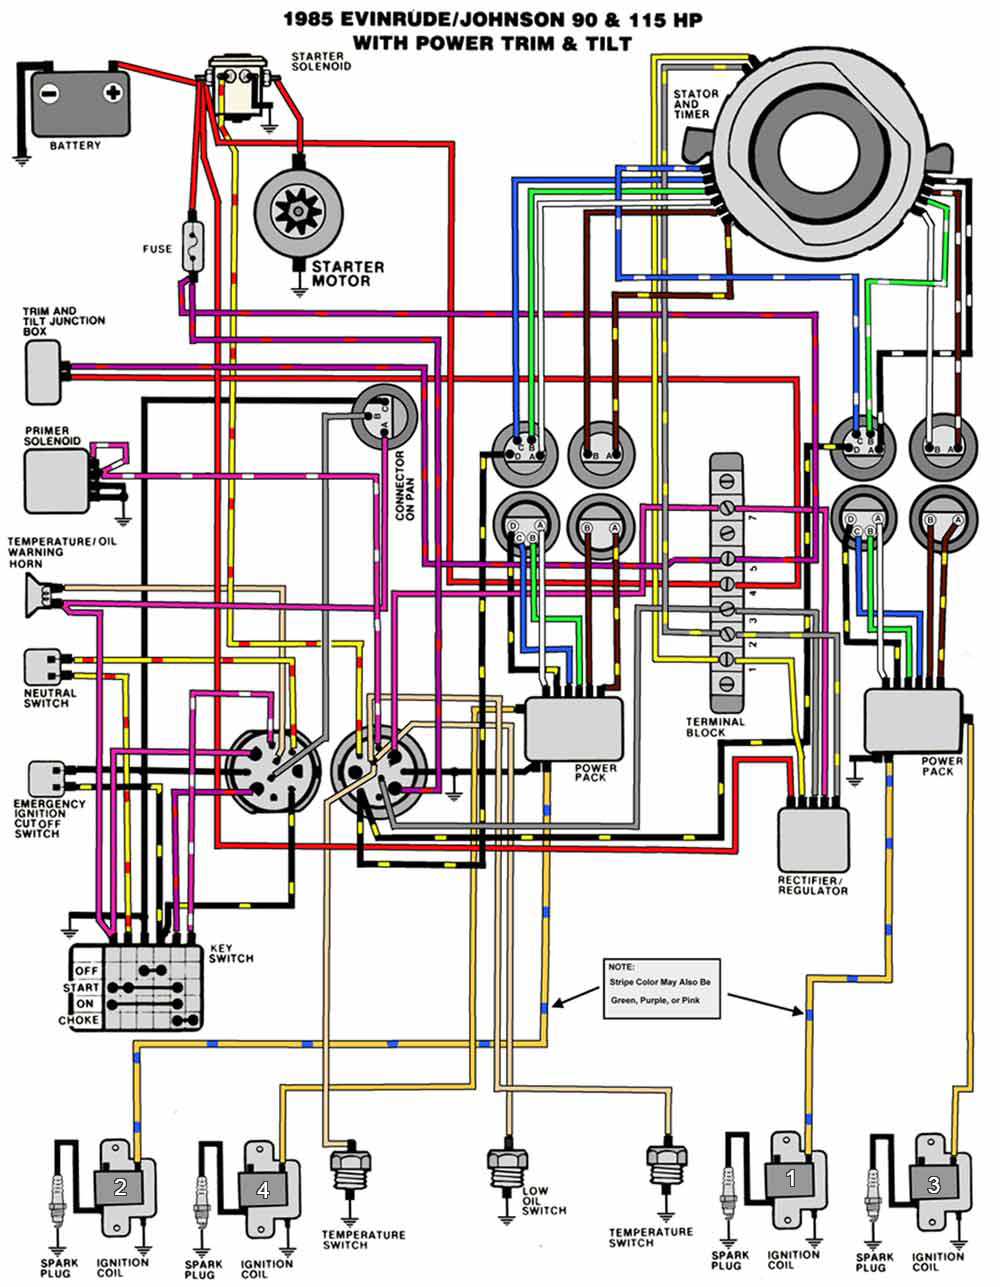 1985_90_115TnT mastertech marine evinrude johnson outboard wiring diagrams mercury wiring harness at crackthecode.co